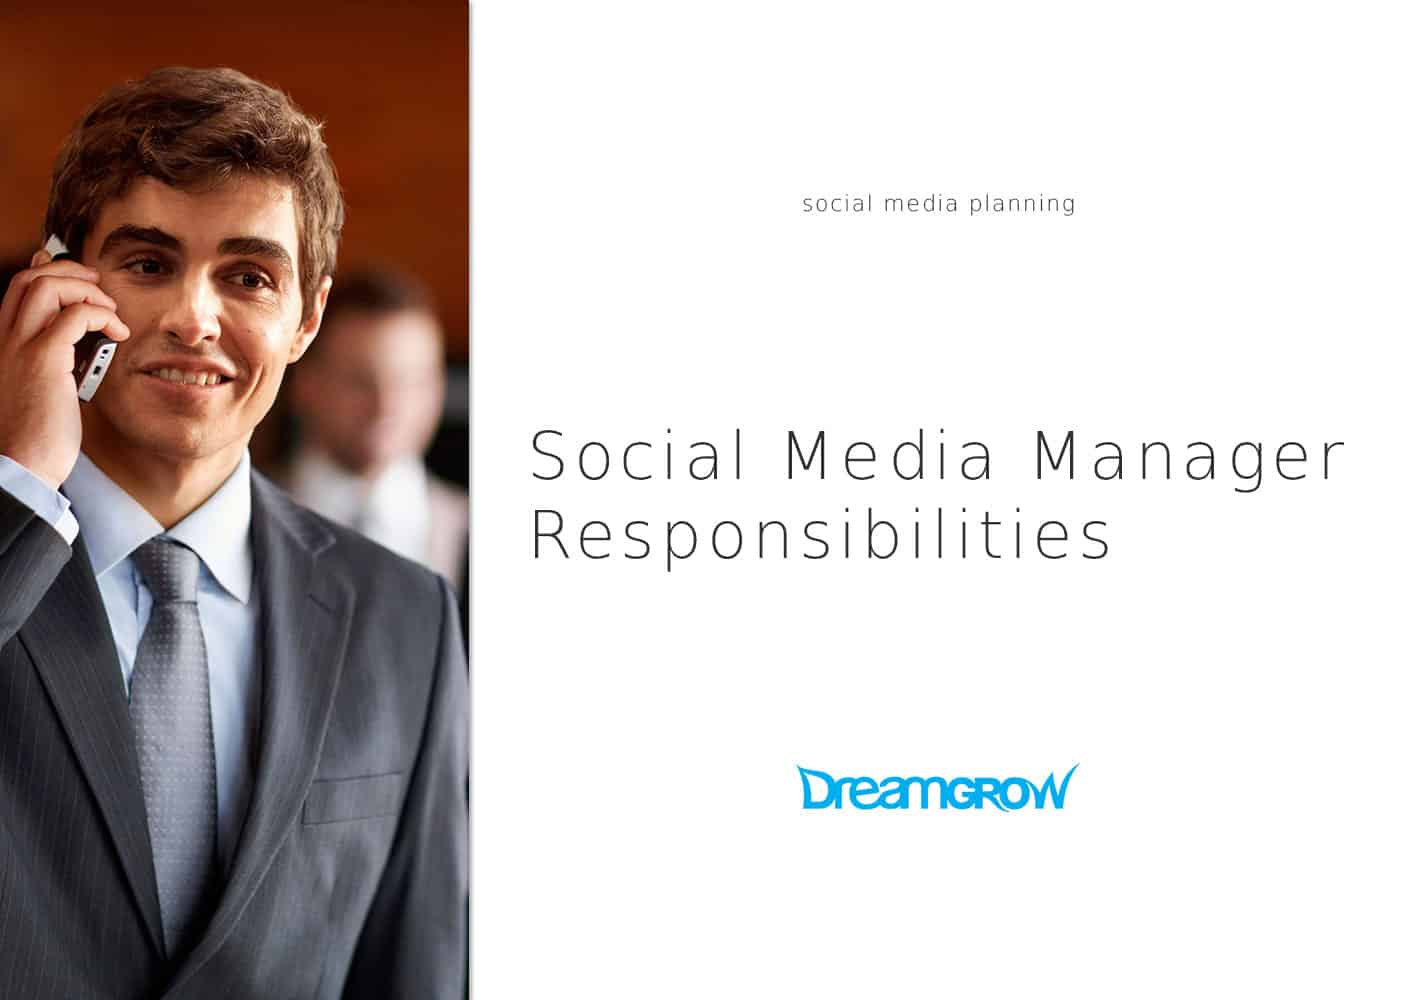 Social Media Manager Responsibilities You Need To Know